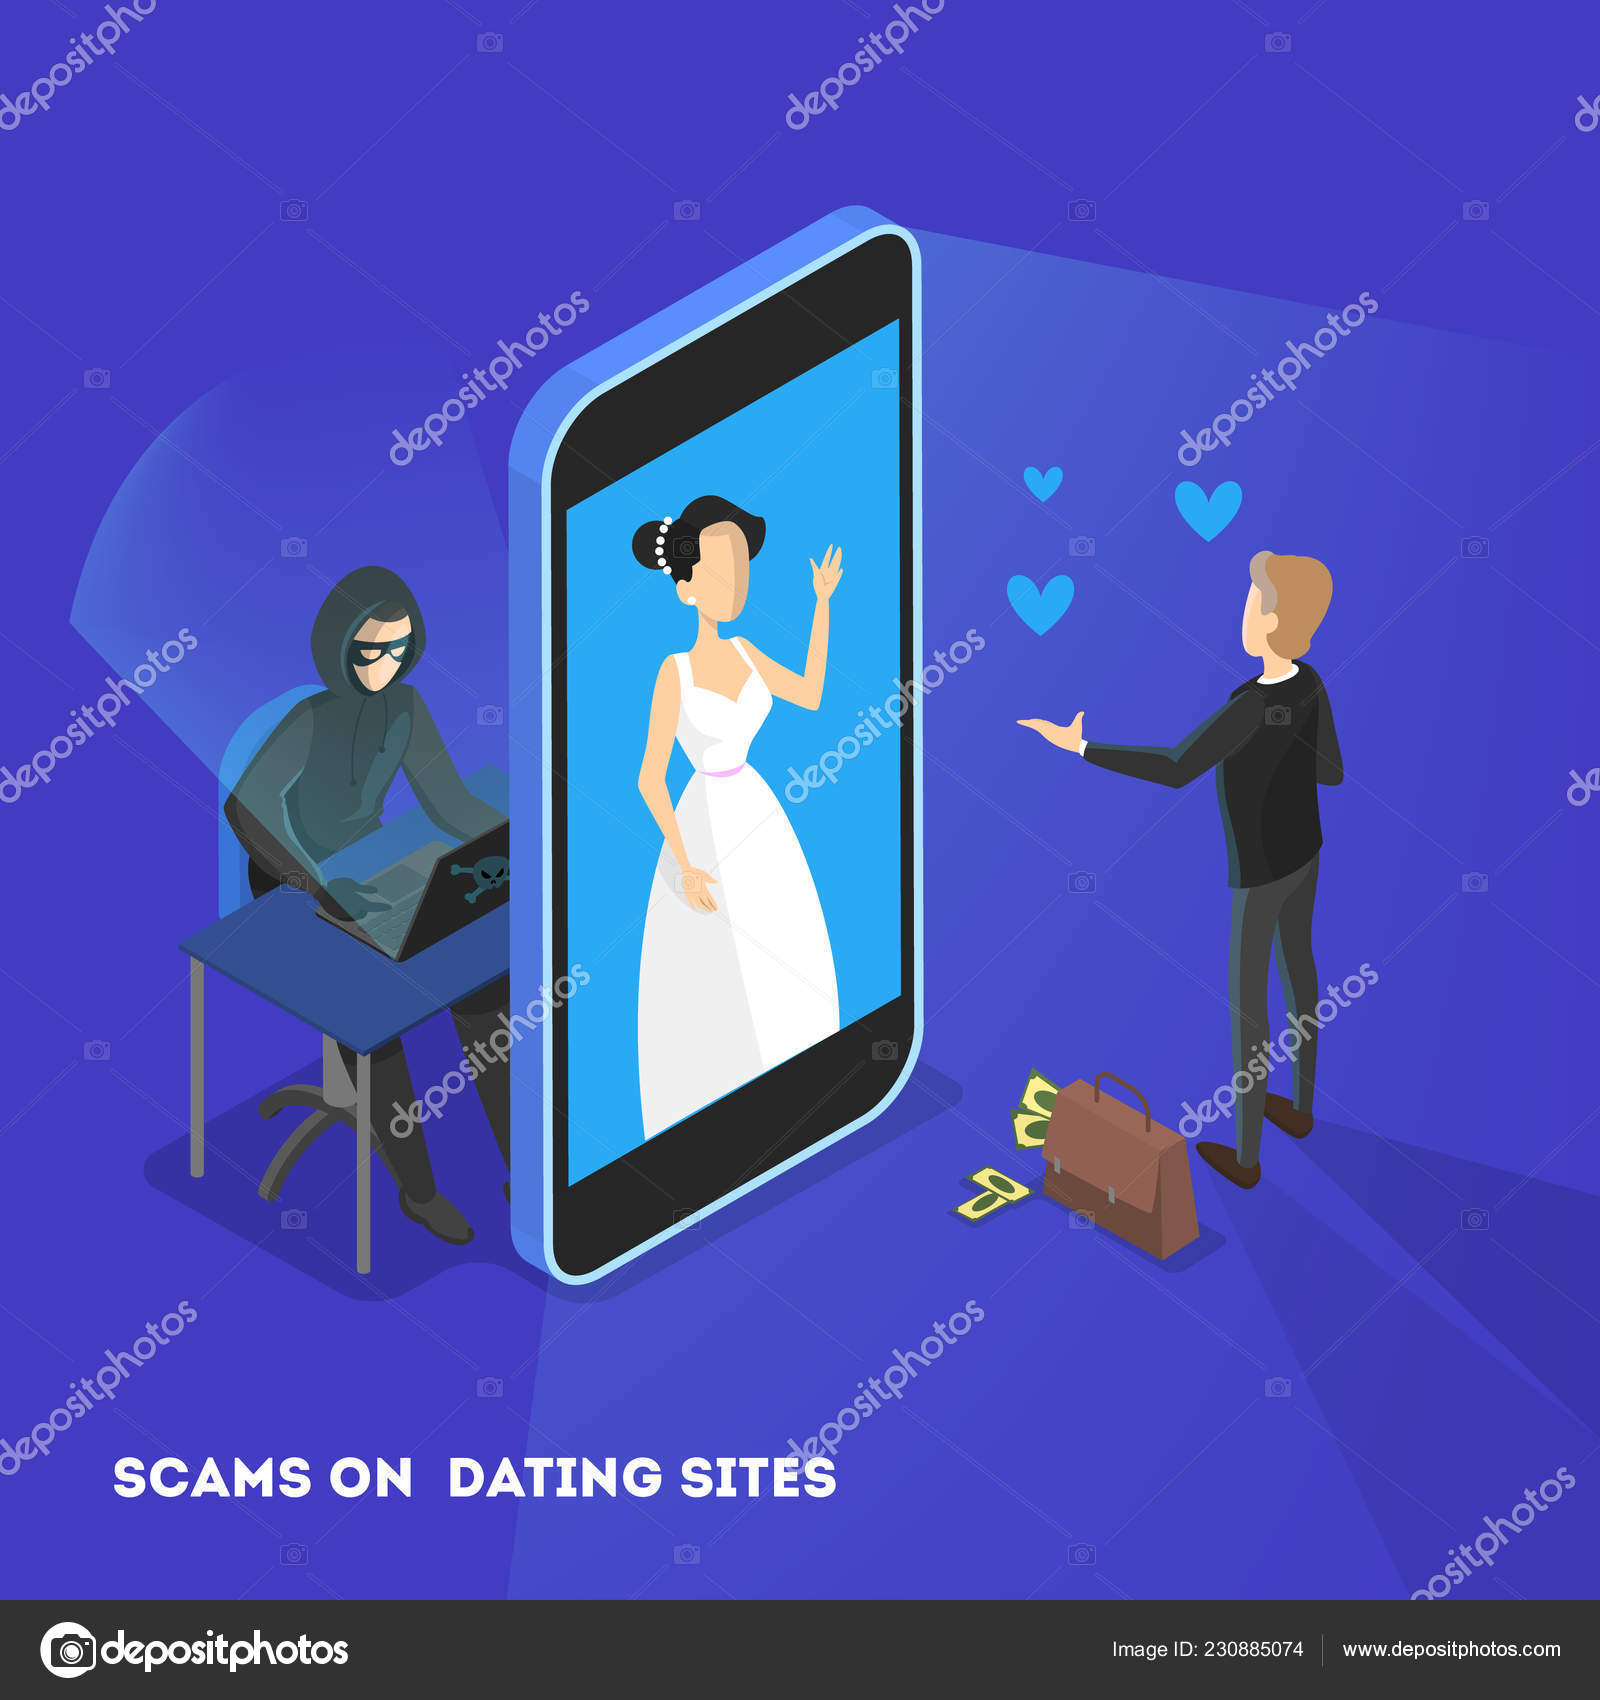 Online dating app  Virtual relationship and love  — Stock Vector